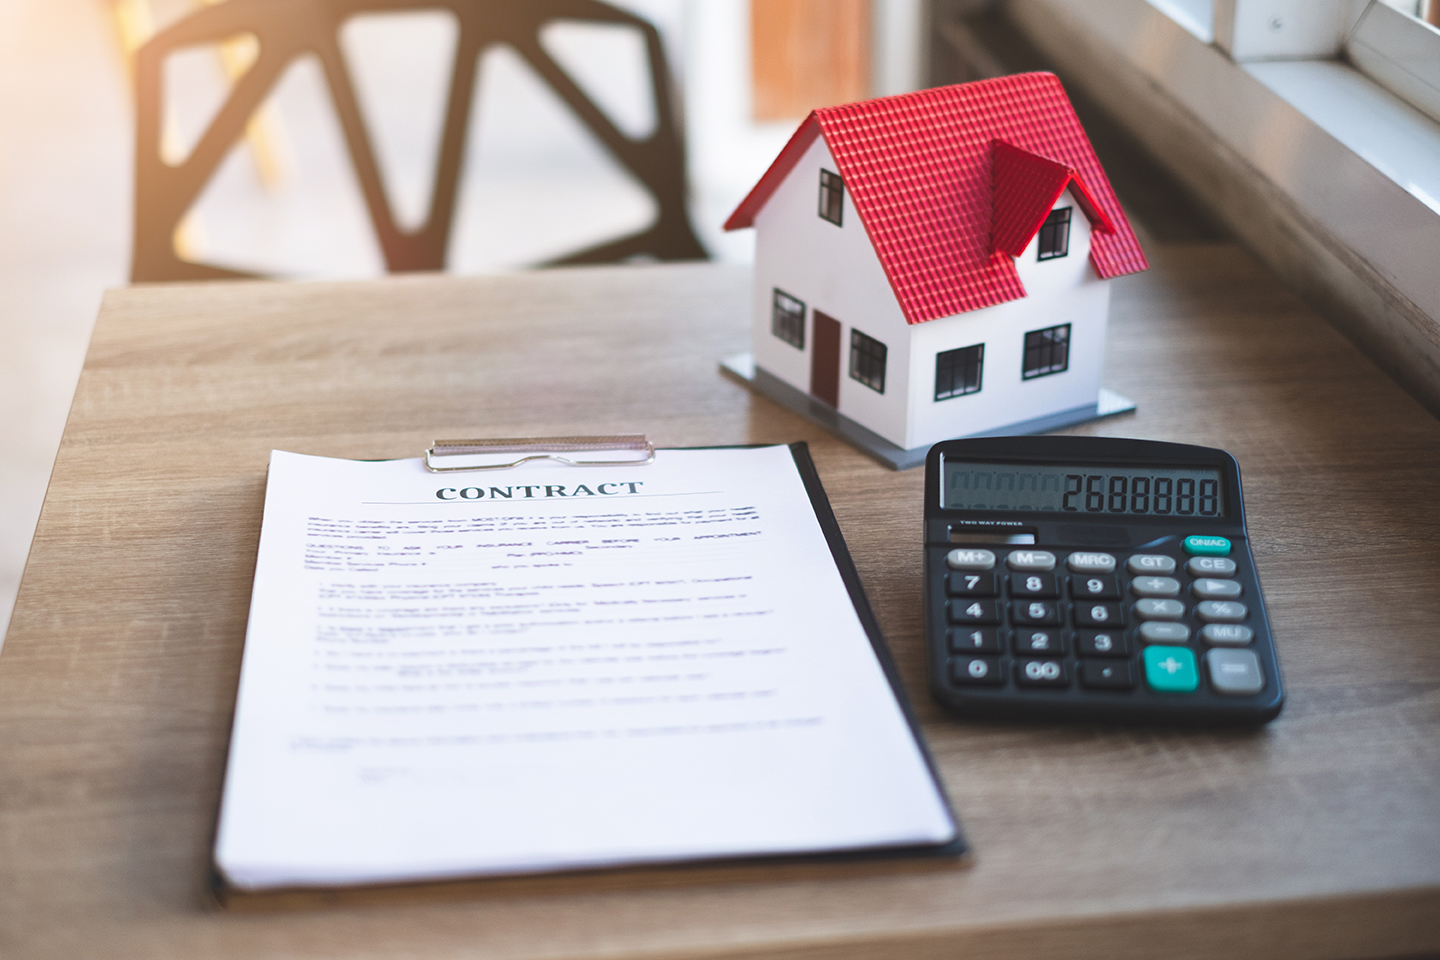 A model house, calculator, and a contract sitting on a table